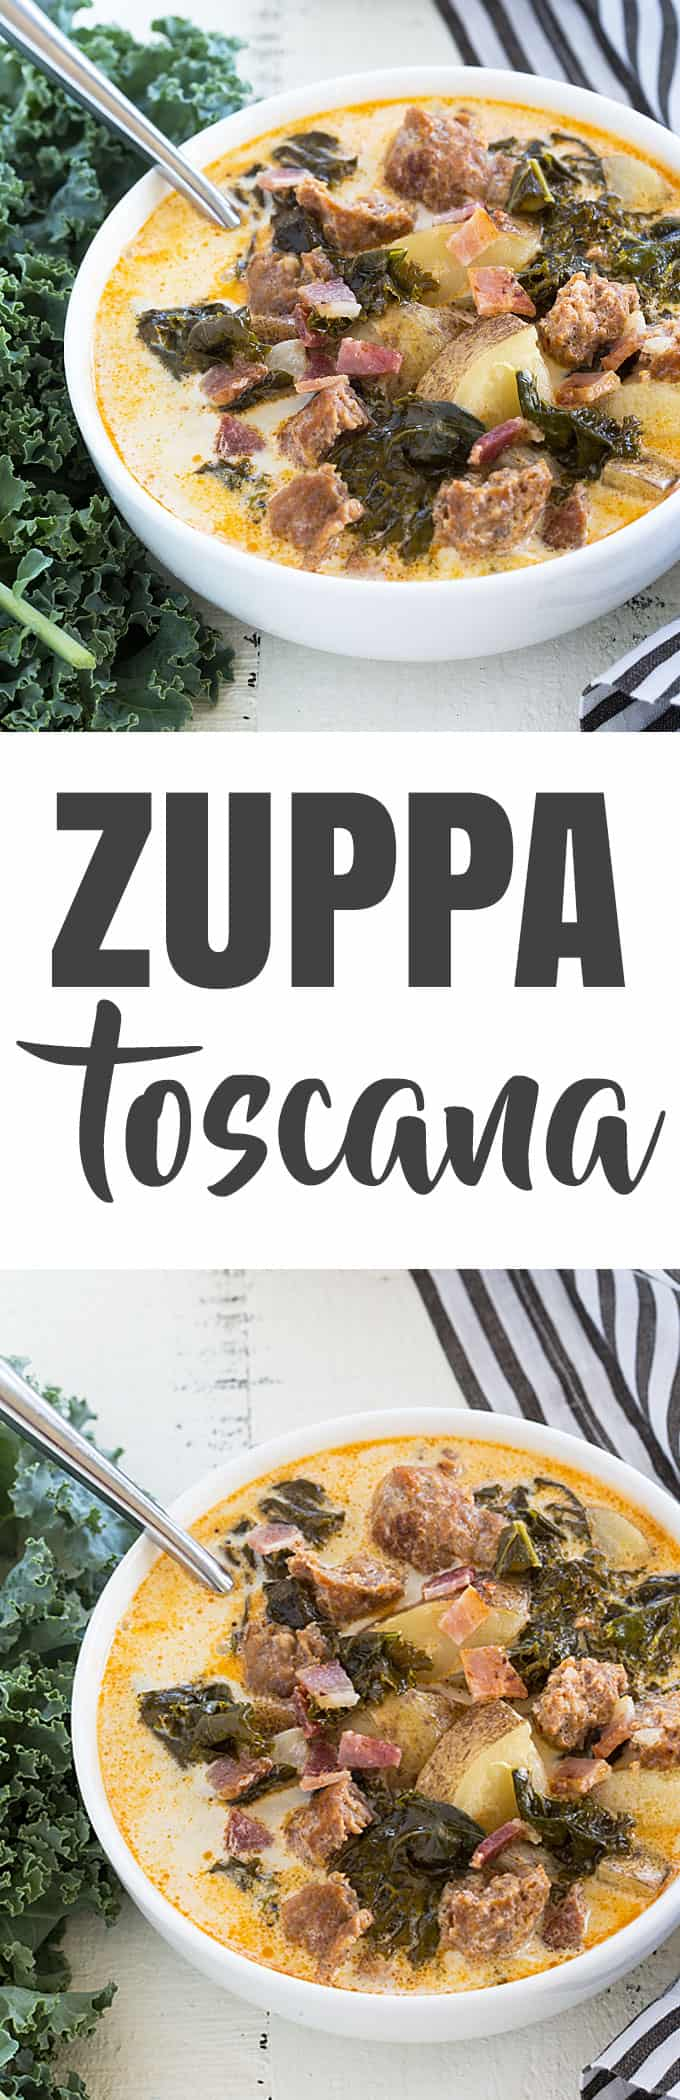 A two image vertical collage of zuppa toscana with overlay text in the center.